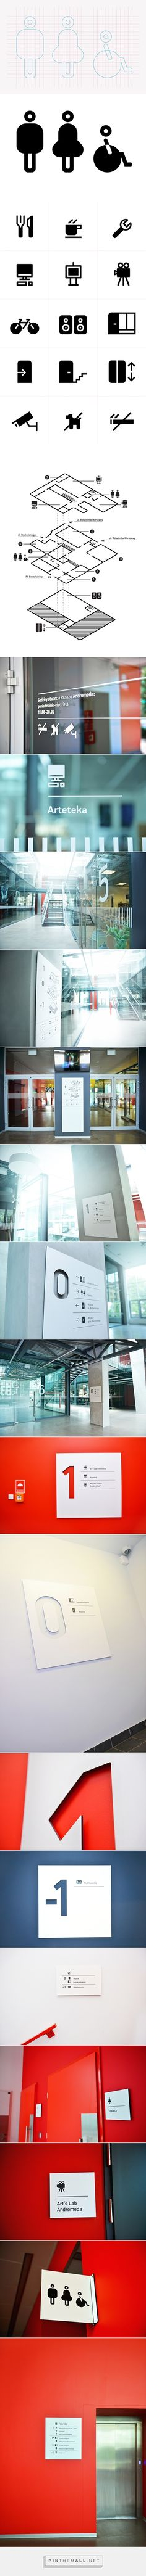 Wayfinding system - cultural and commercial passage on Behance Library Signage, Signage Display, Signage Design, Map Design, Display Design, Icon Design, Directional Signage, Wayfinding Signs, Environmental Graphic Design